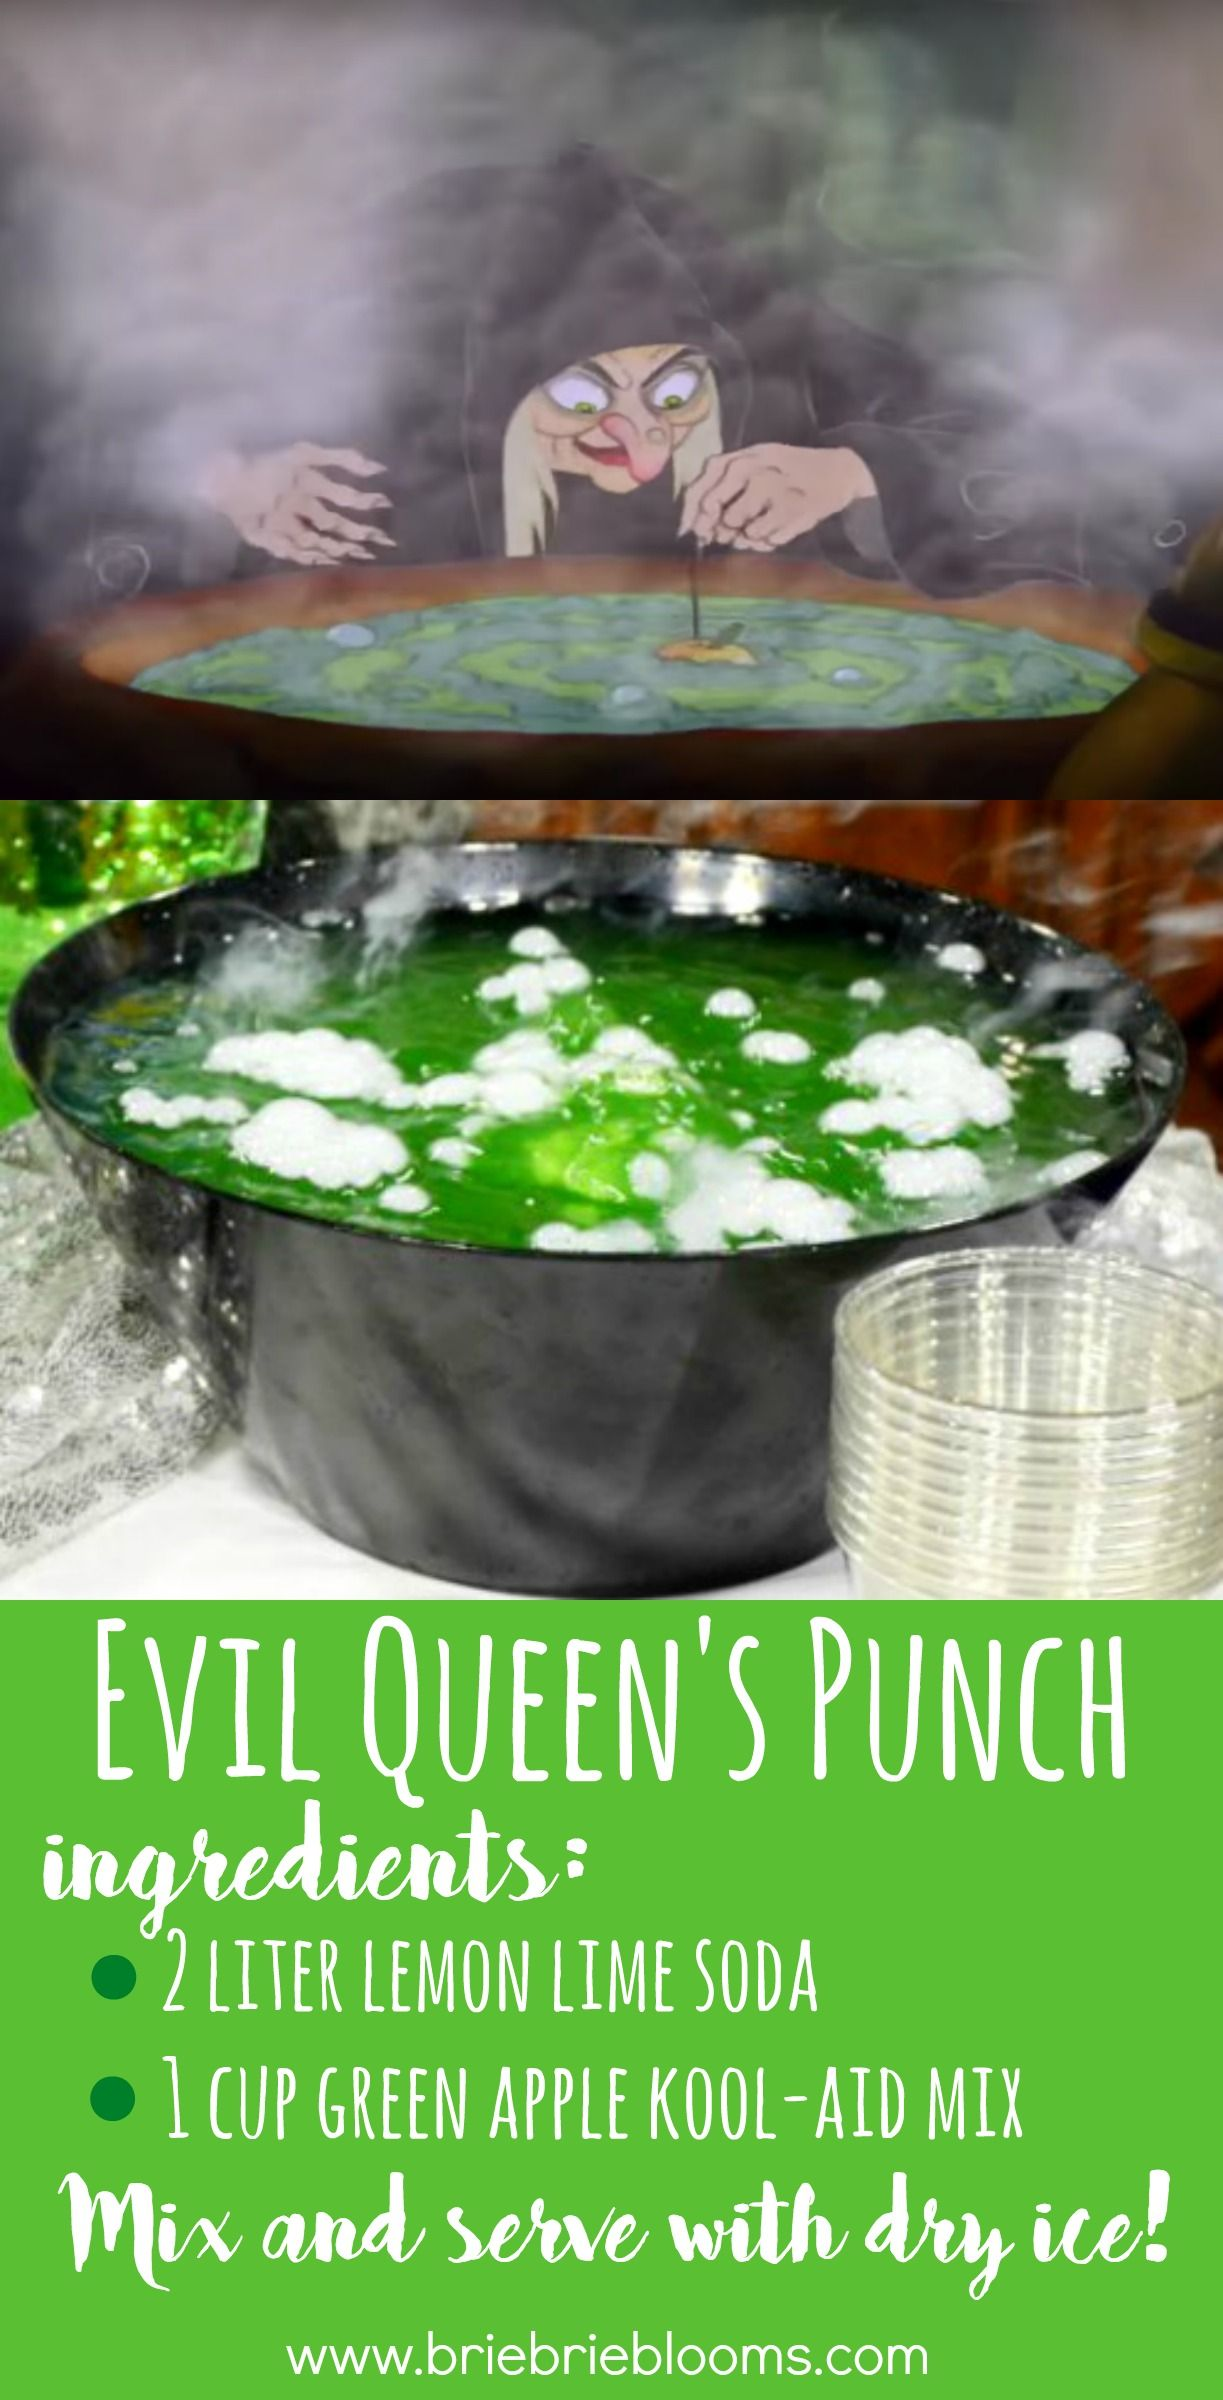 Evil Queen's Punch Recipe